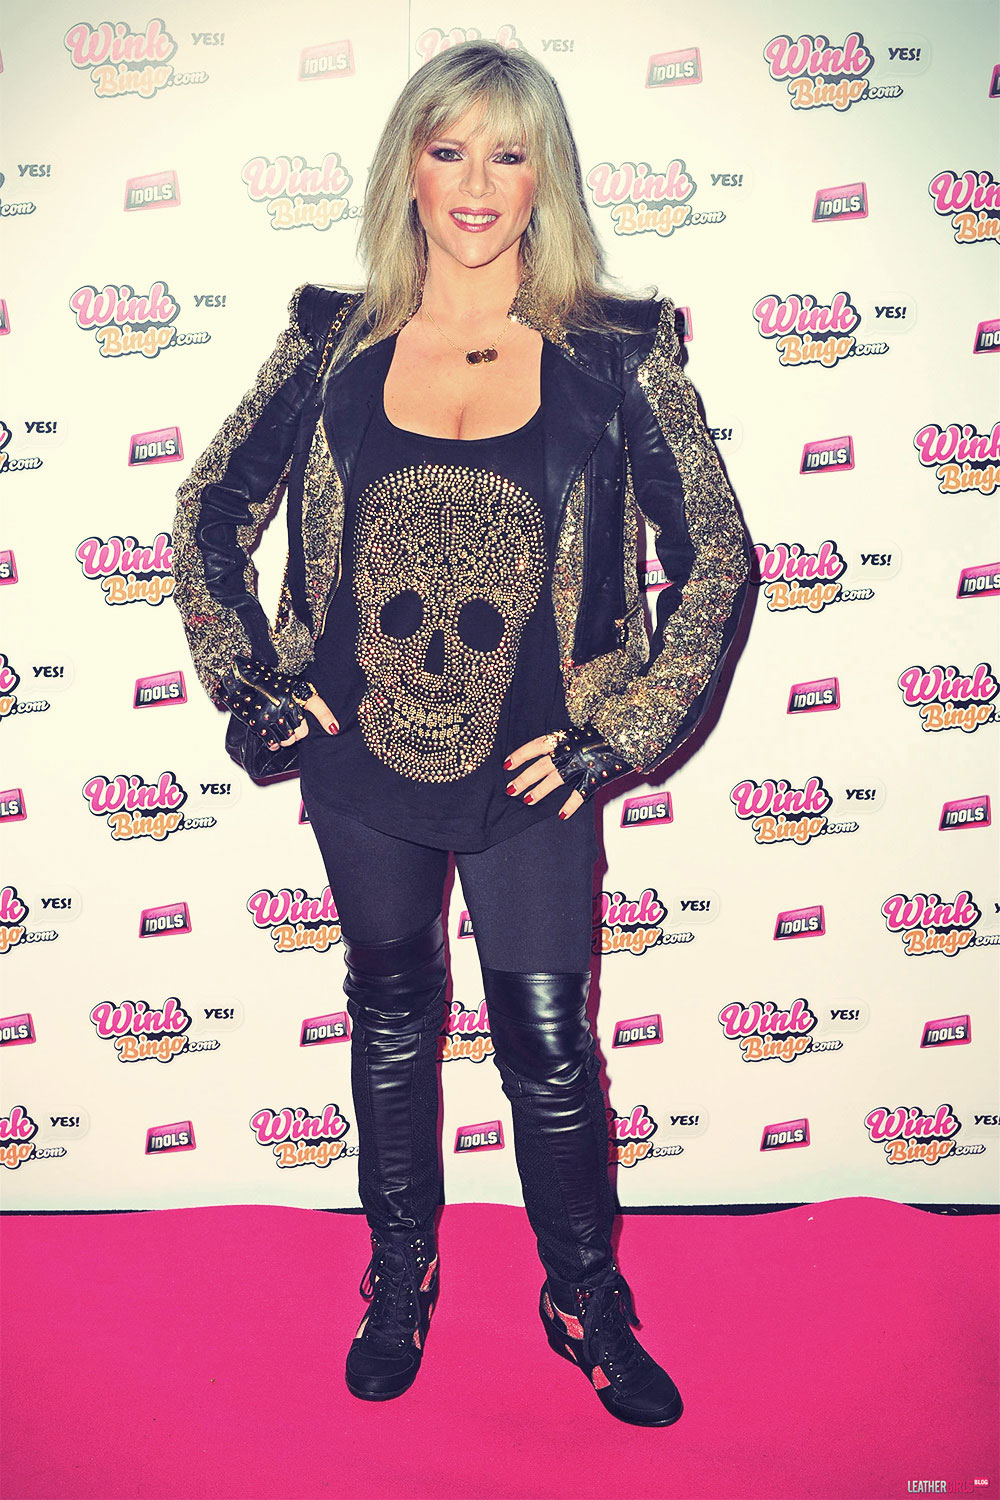 Samantha Fox attends Wink Bingo Celebrity Female Take Over